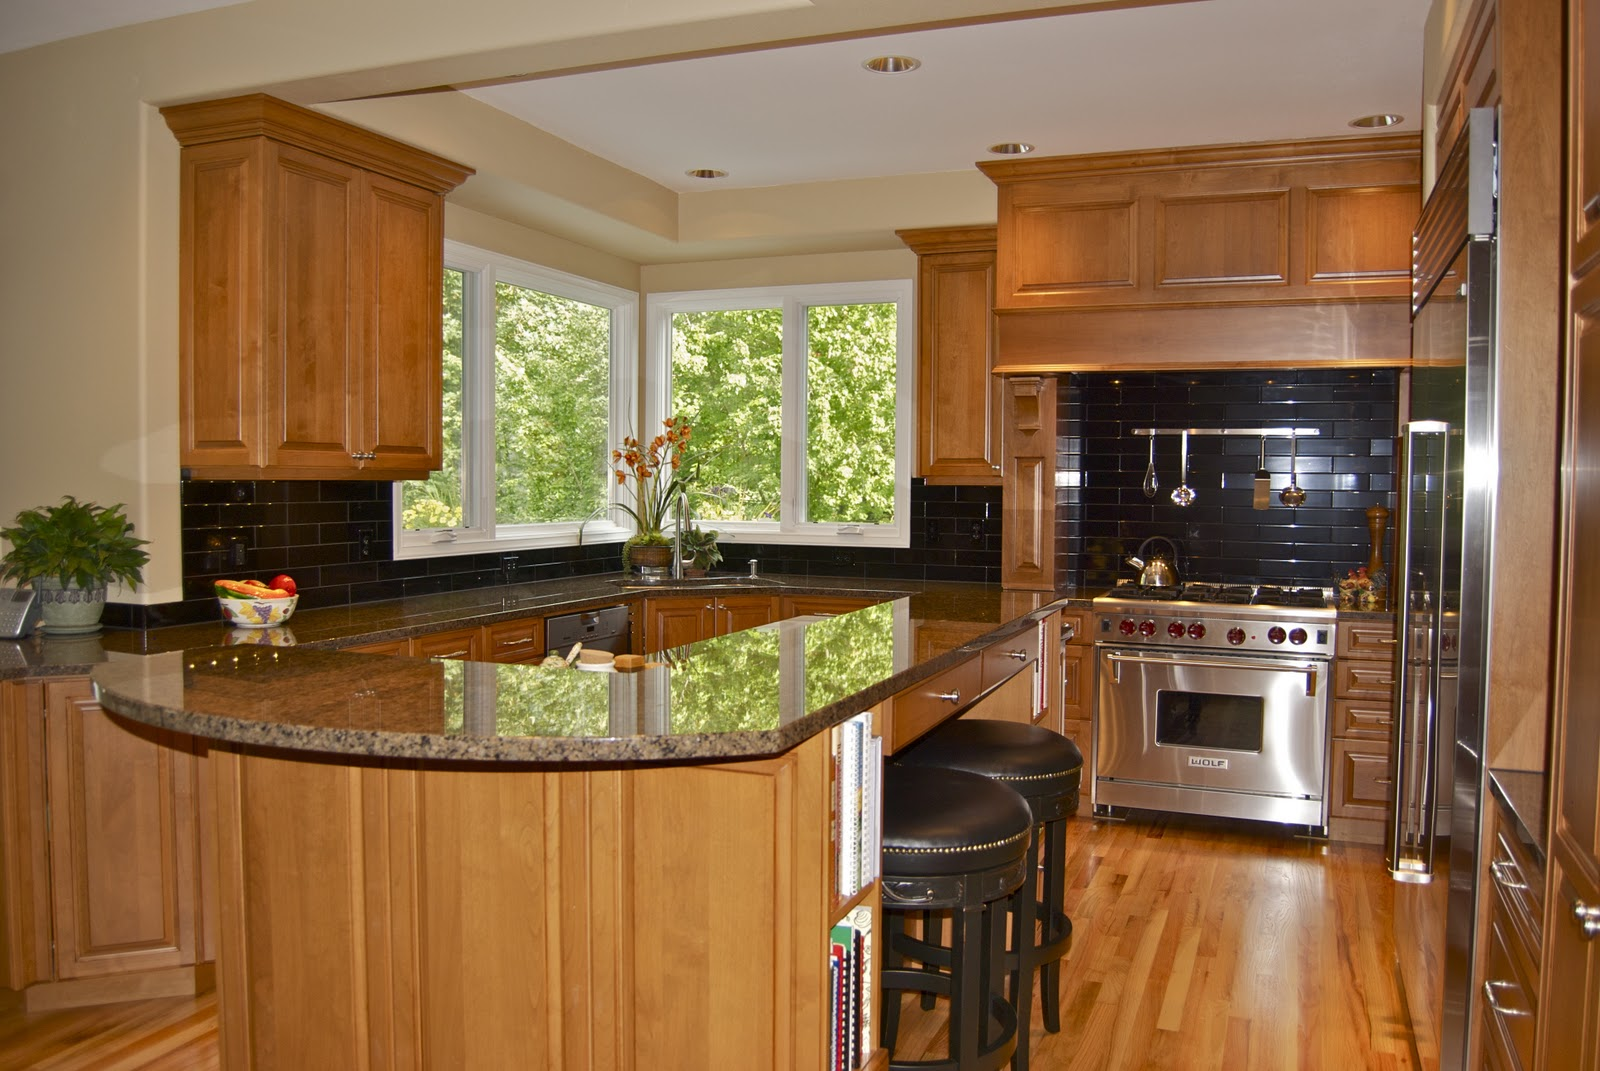 kitchen designs with two windows my two cents kitchen remodel bellevue wa after 800